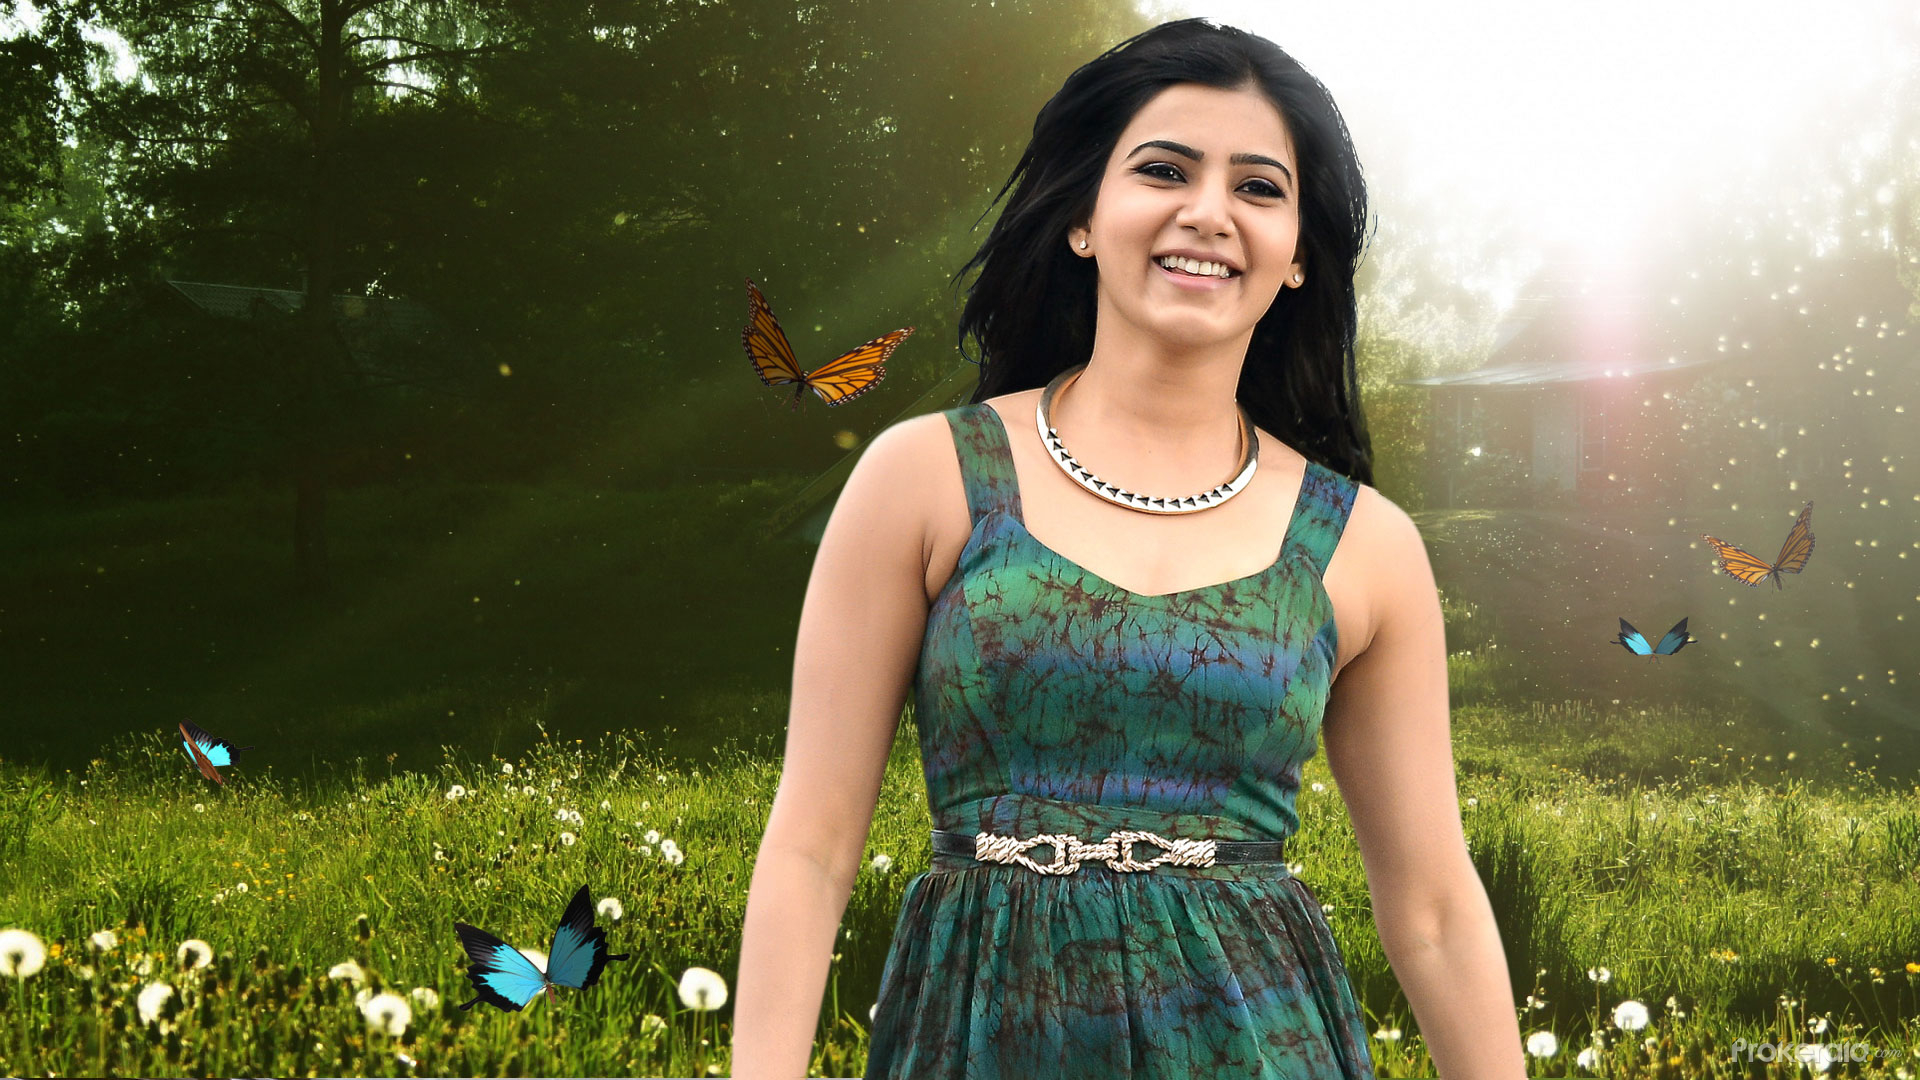 All Bollywood Girl Hd Wallpaper Samantha Hd Wallpaper For Mobile And Desktop